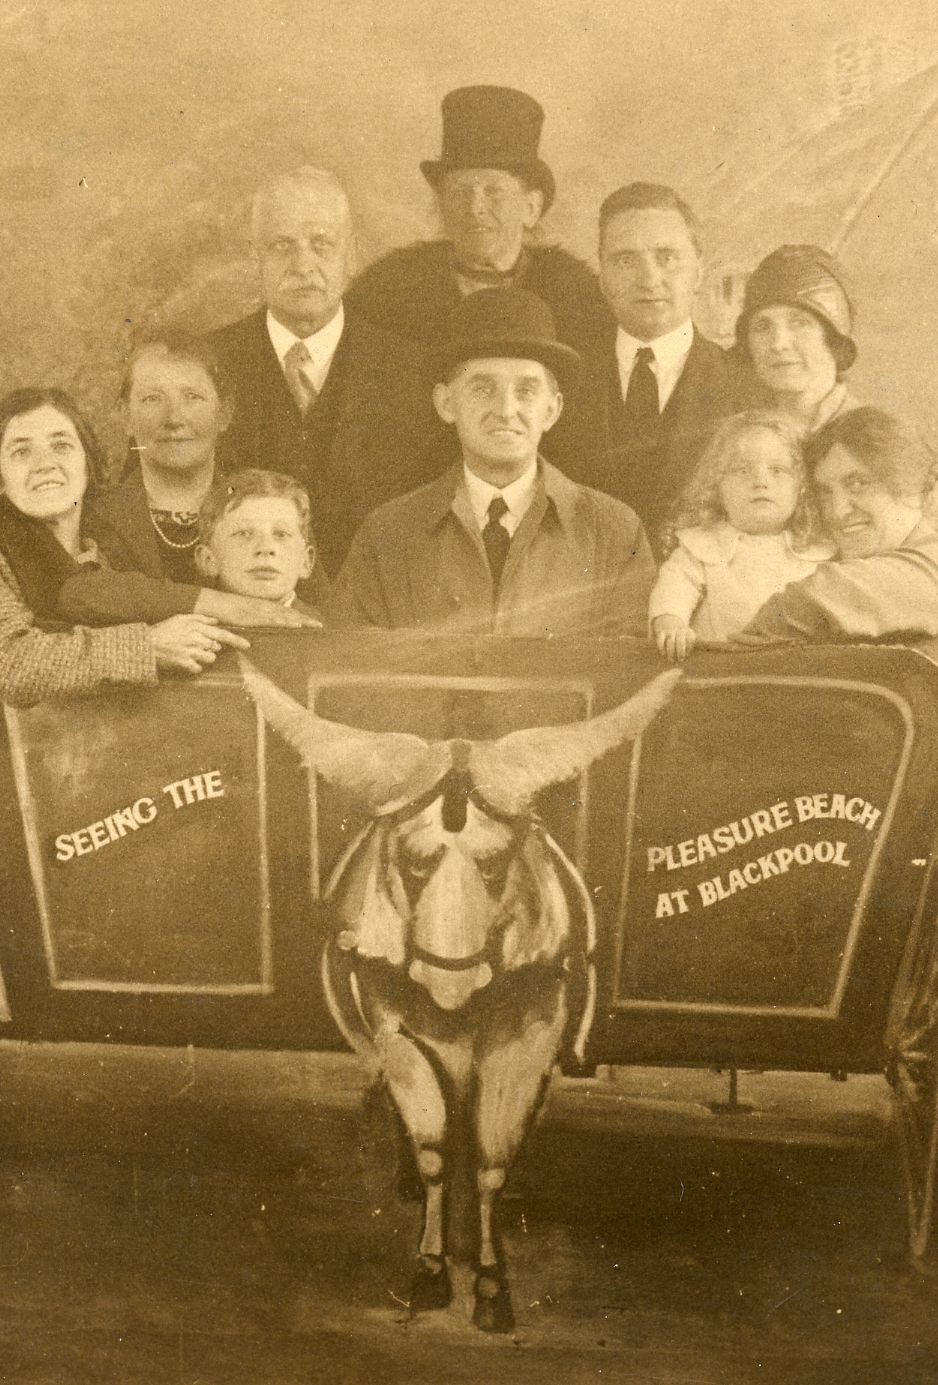 Blackpool souvenir photograph. This image was taken in 1930 by Charles Howell, Official photographer, Pleasure Beach, Blackpool.